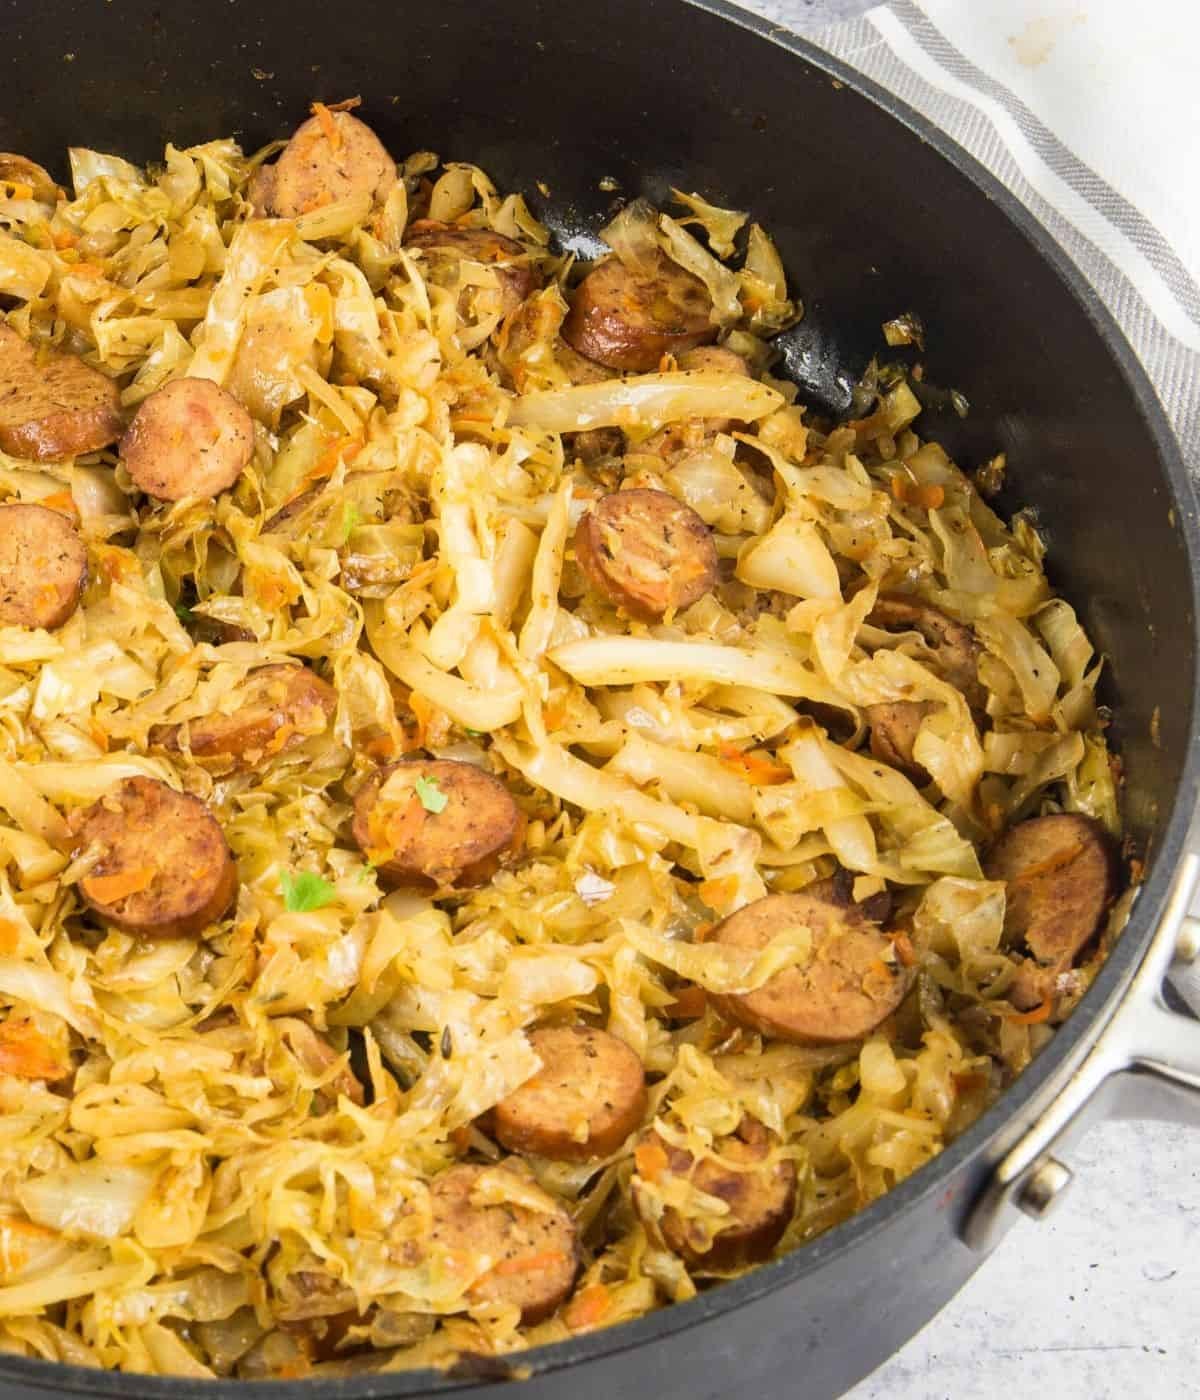 A large skillet with shredded cabbage and smoked sausage.